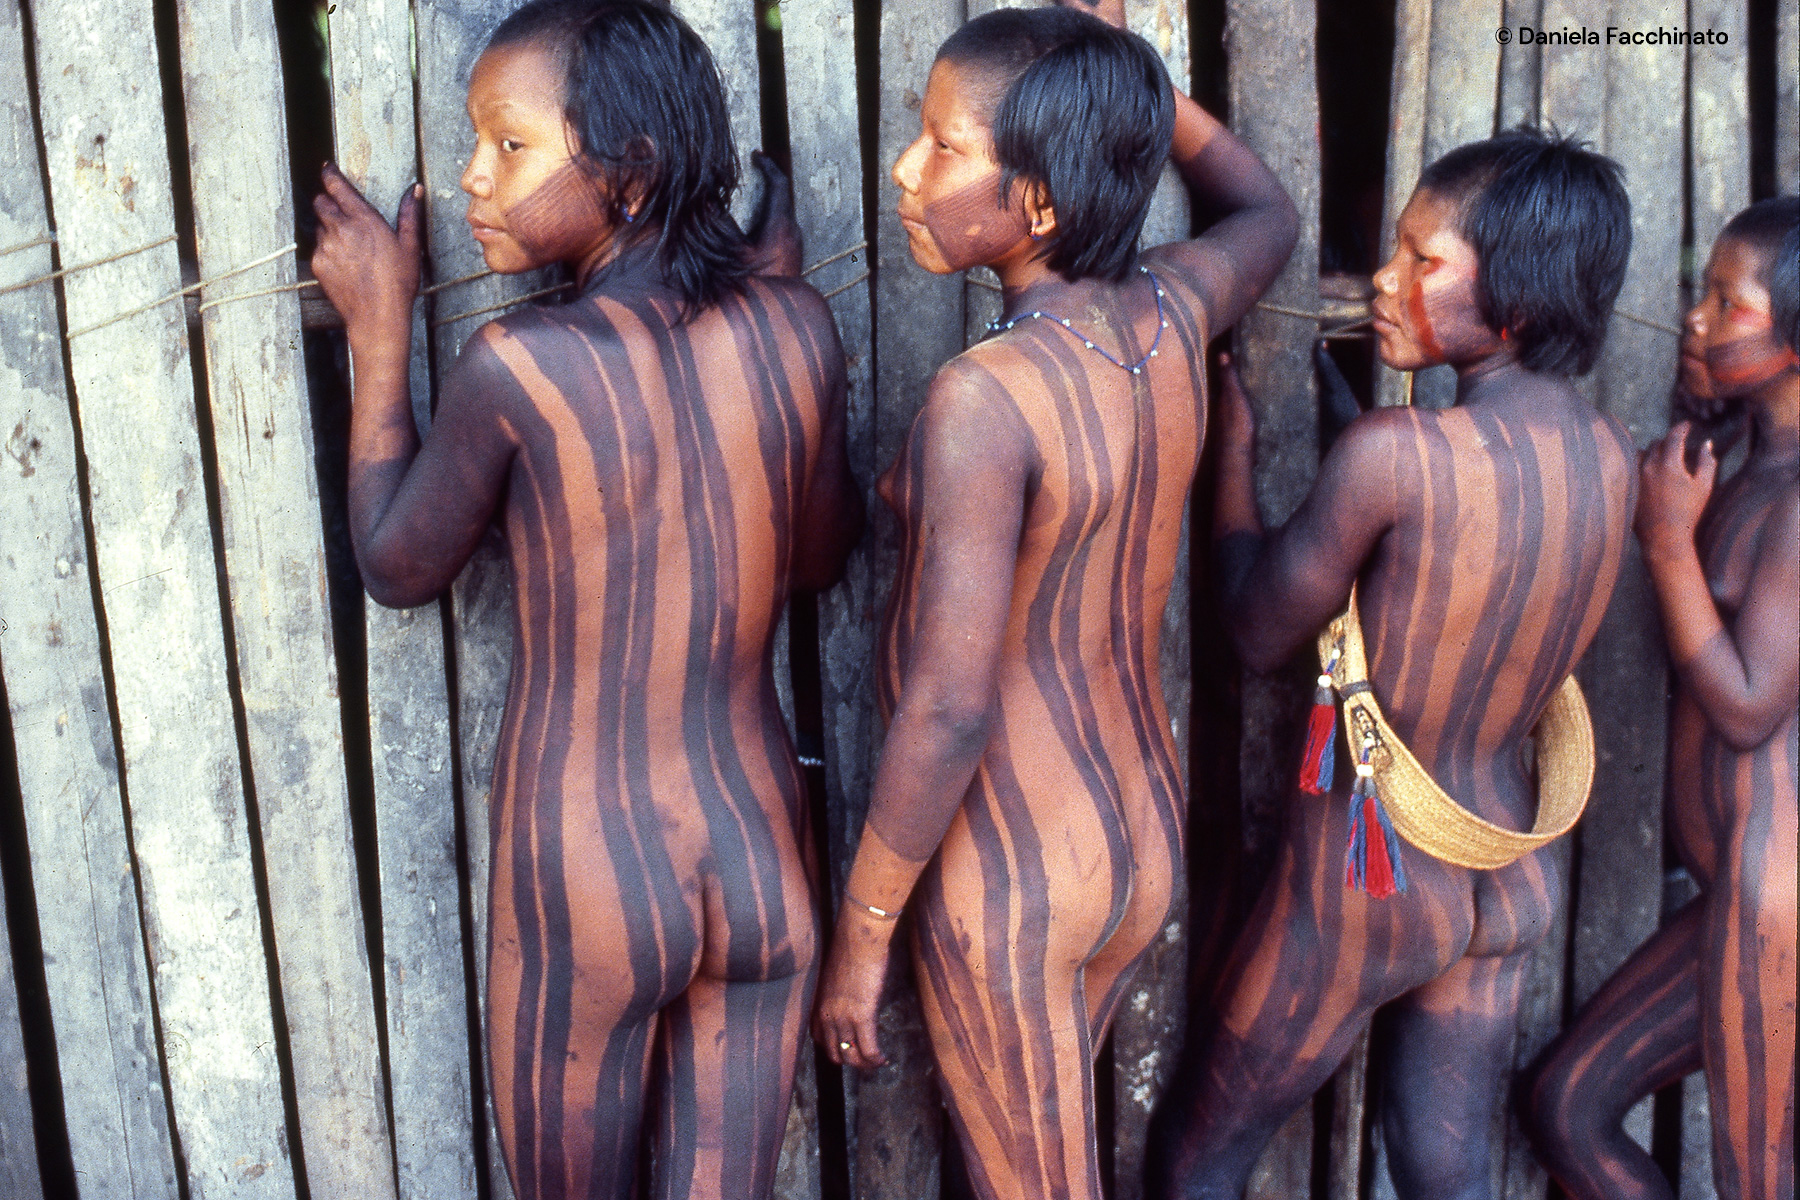 Amazonia, Xingù. Young Kayapò indies spying inside the hut the meeting of the tribe chiefs